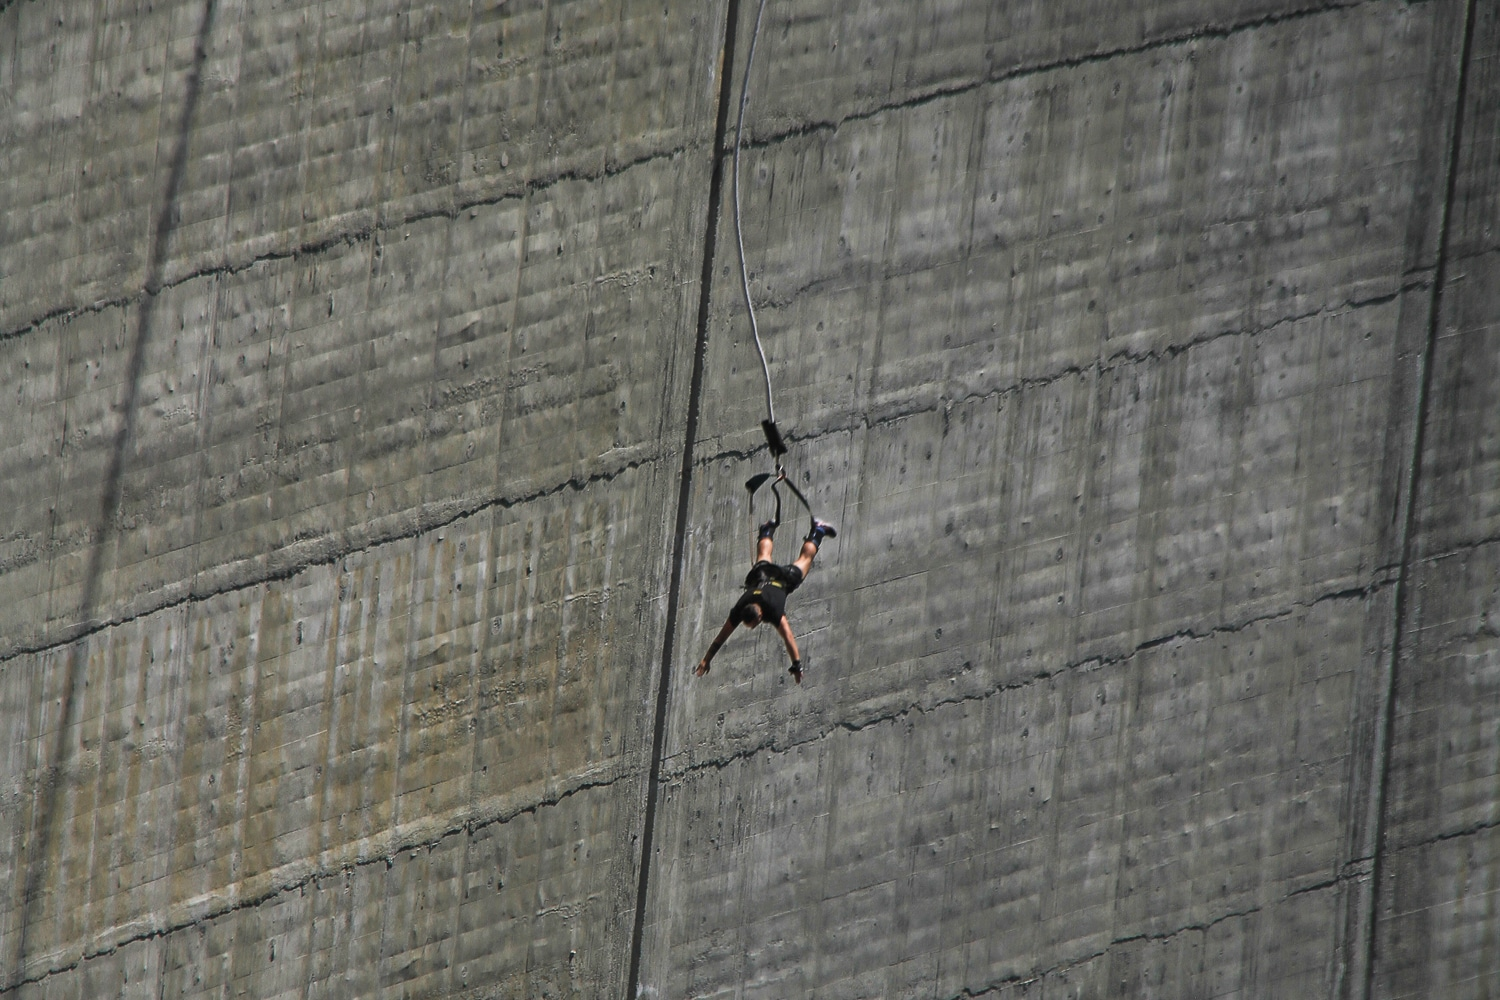 Verzasca Dam 007 Bungee Jump James Bond GoldenEye